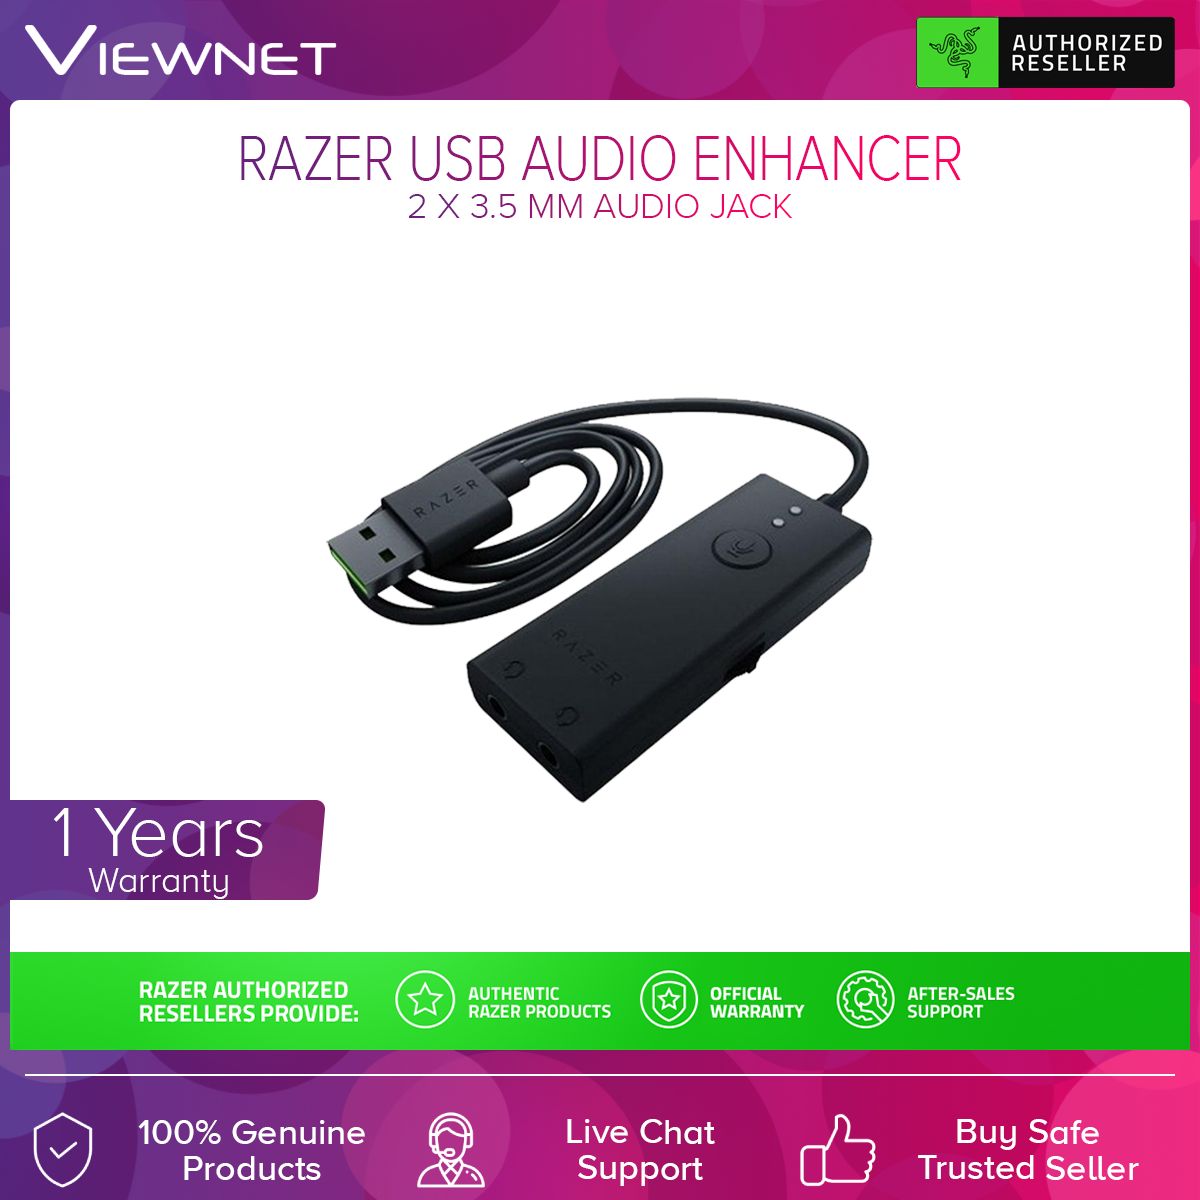 Razer RZ19-02310100-R3M1 USB Audio Enhancer